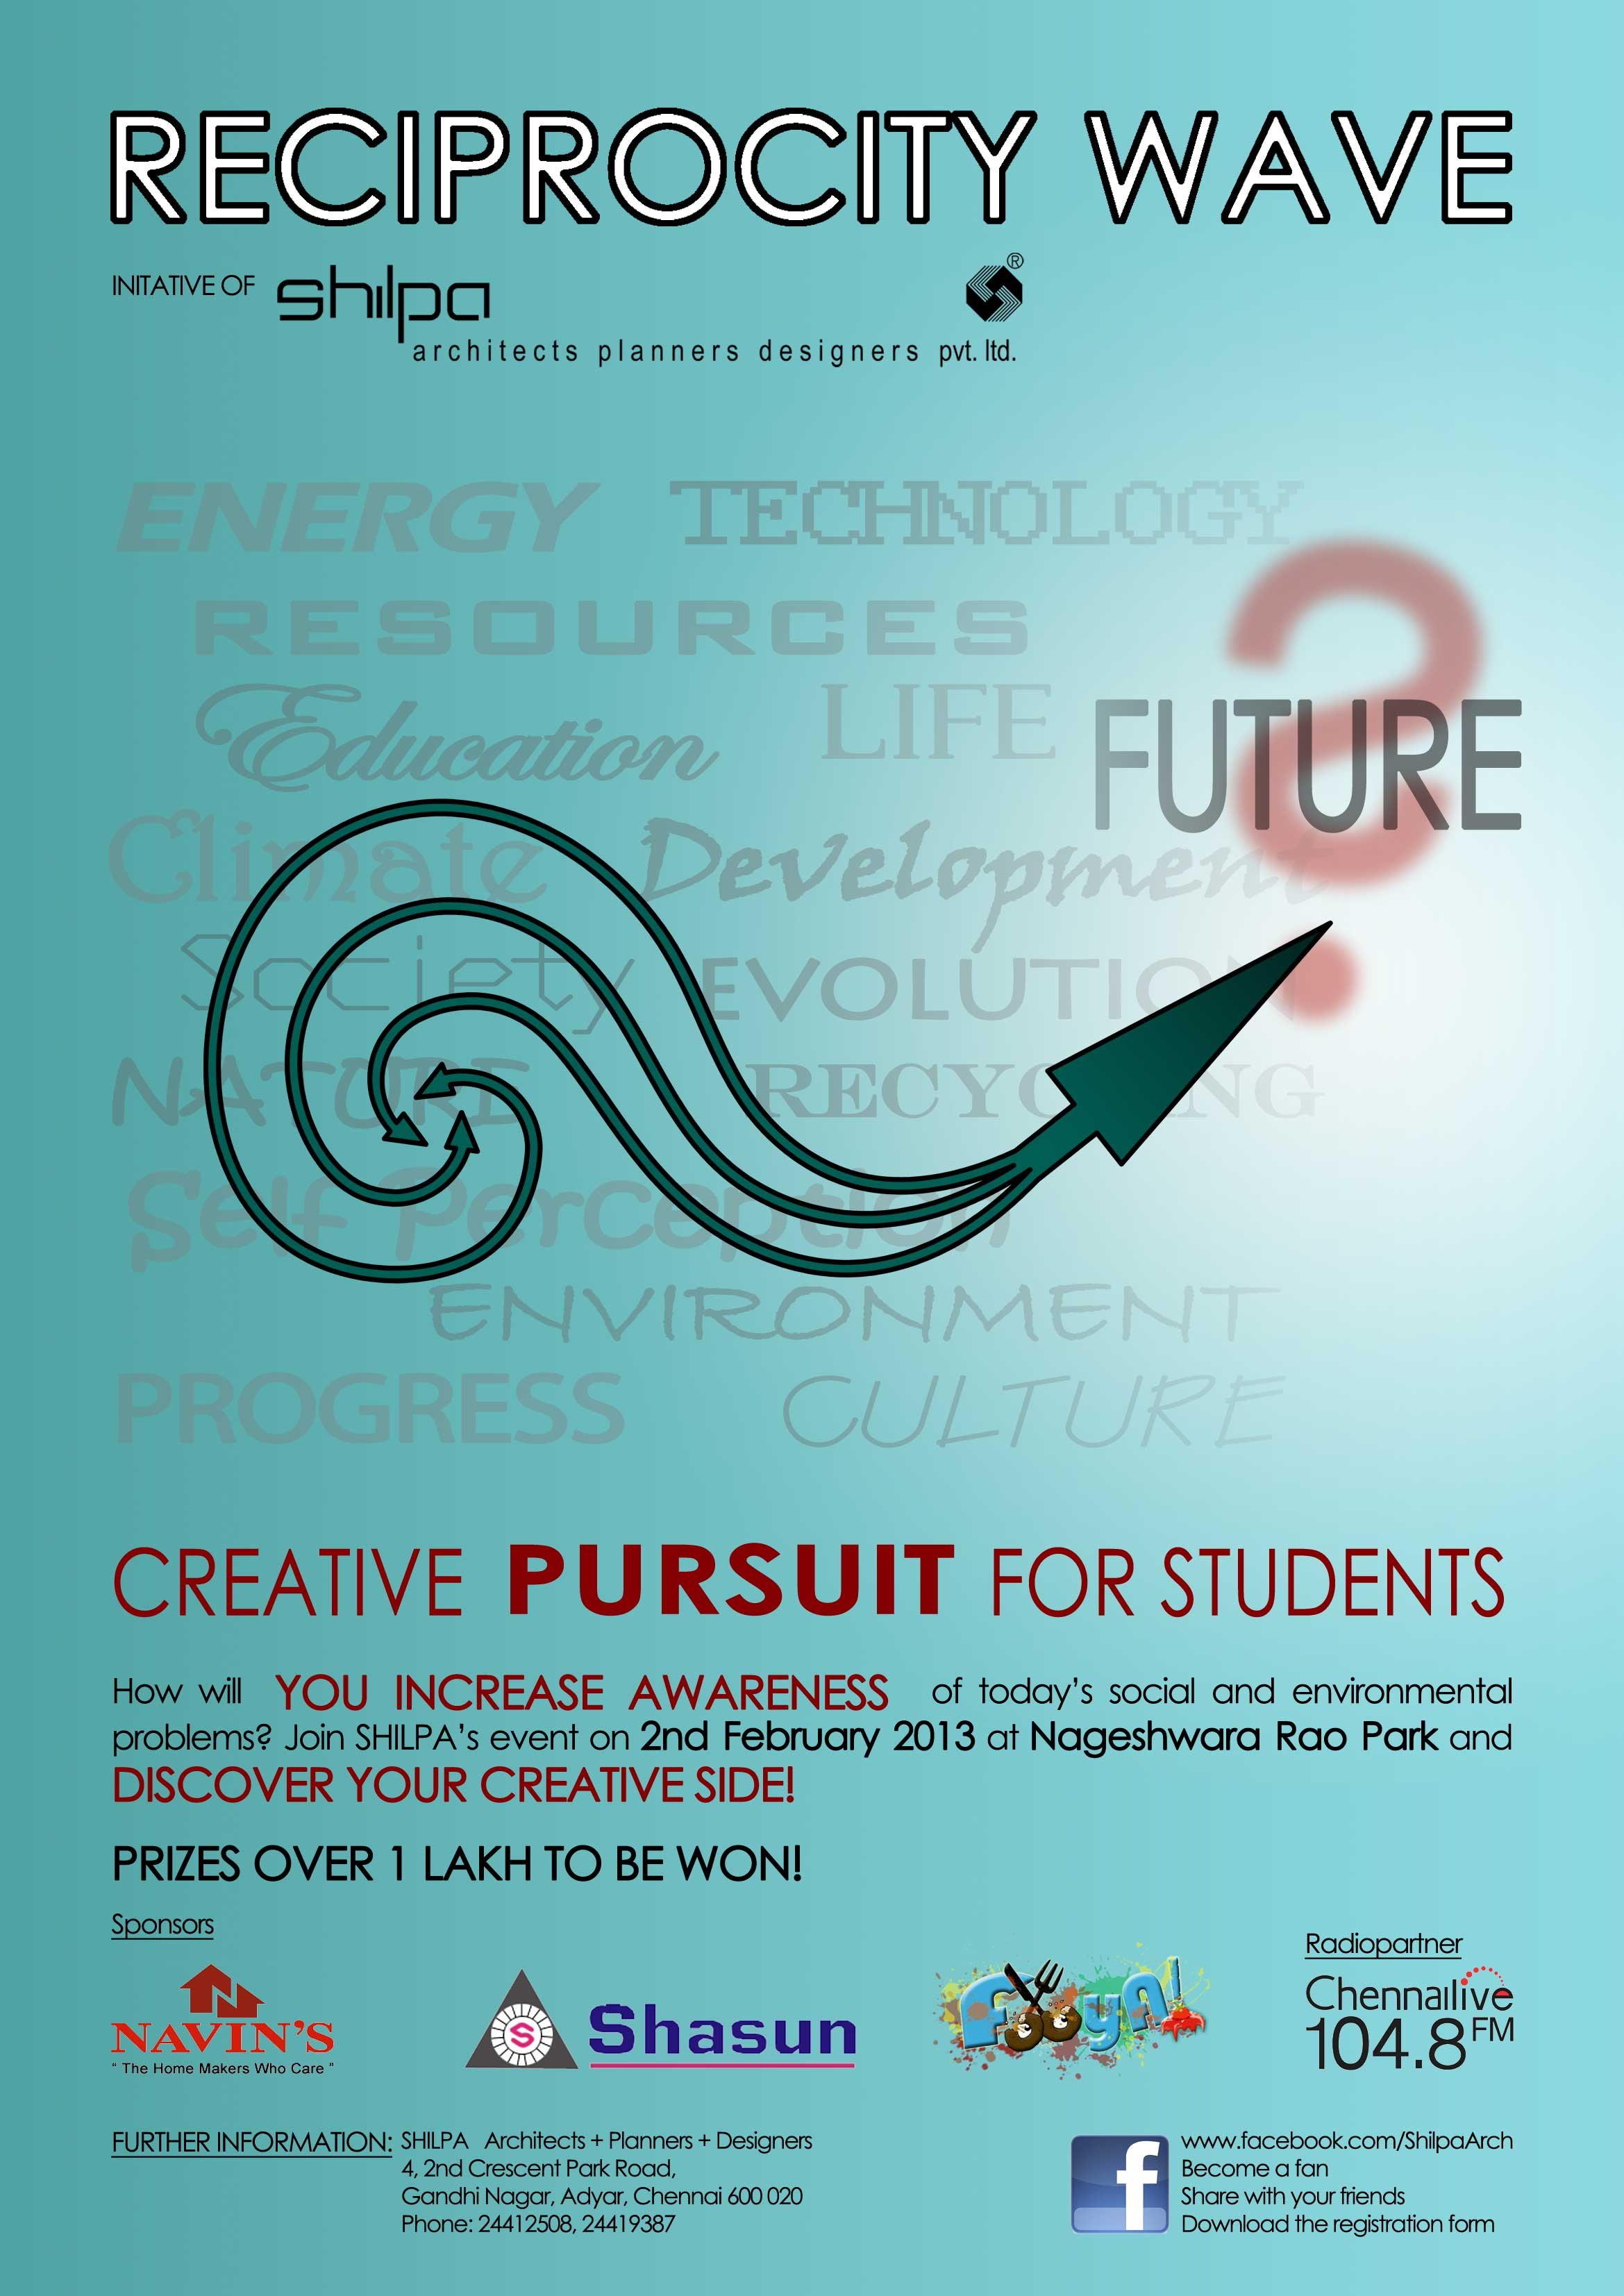 Shilpa Architects: Reciprocity Wave - Creative Pursuit for Students